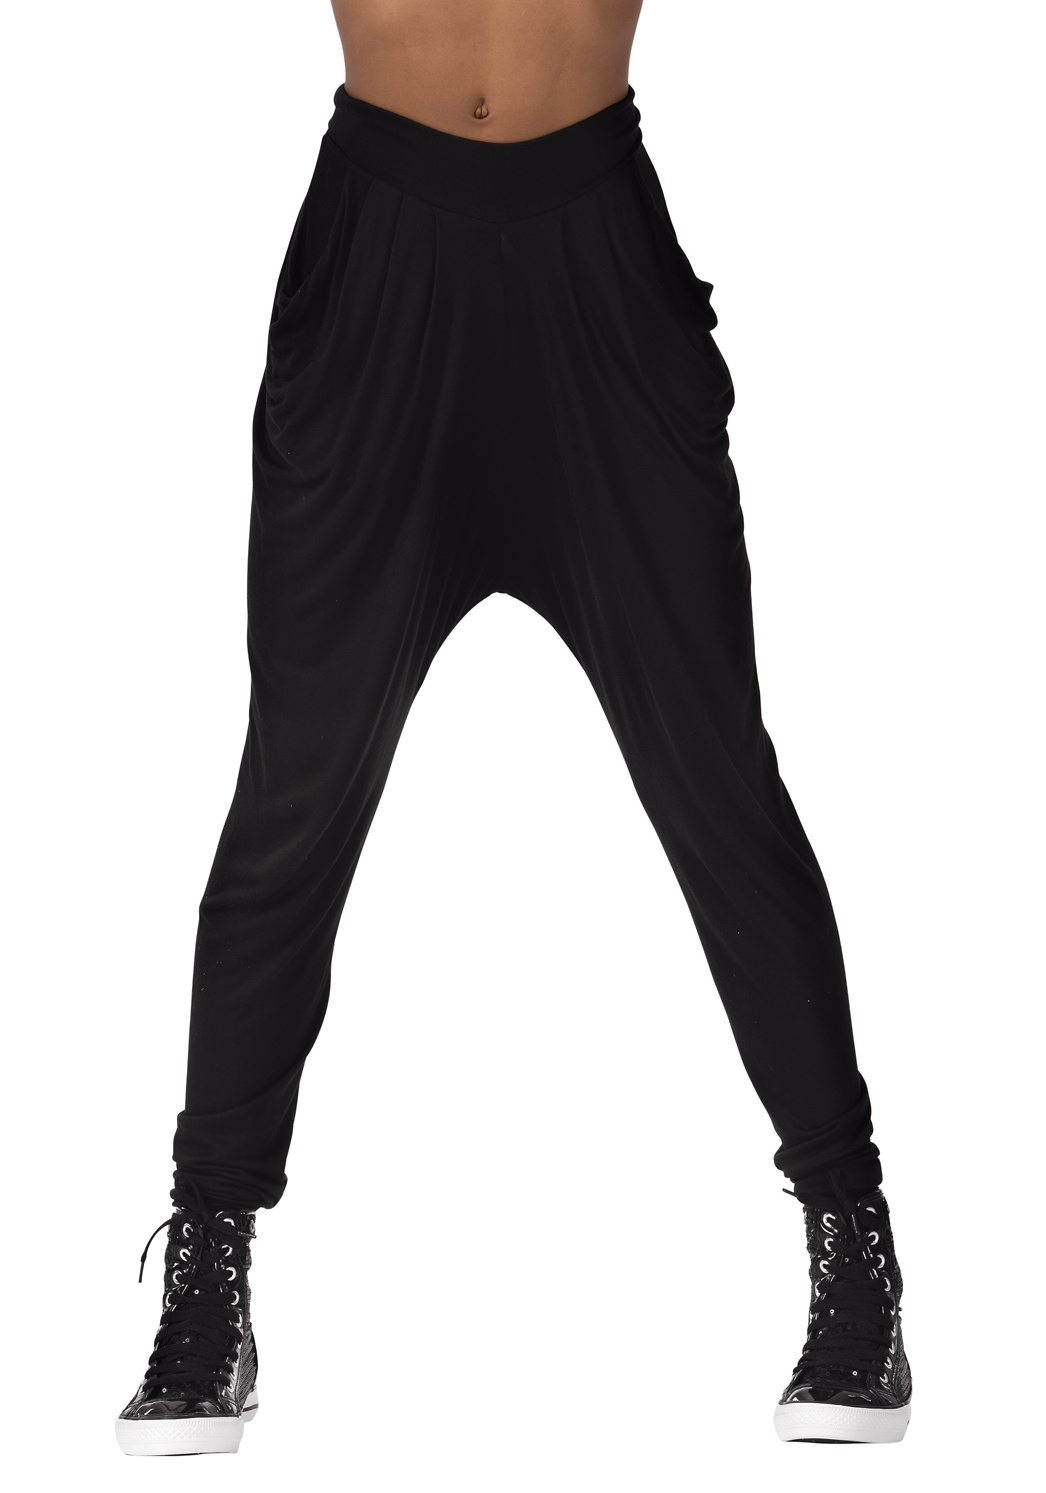 Child Stretch Harem Hip-Hop Pants